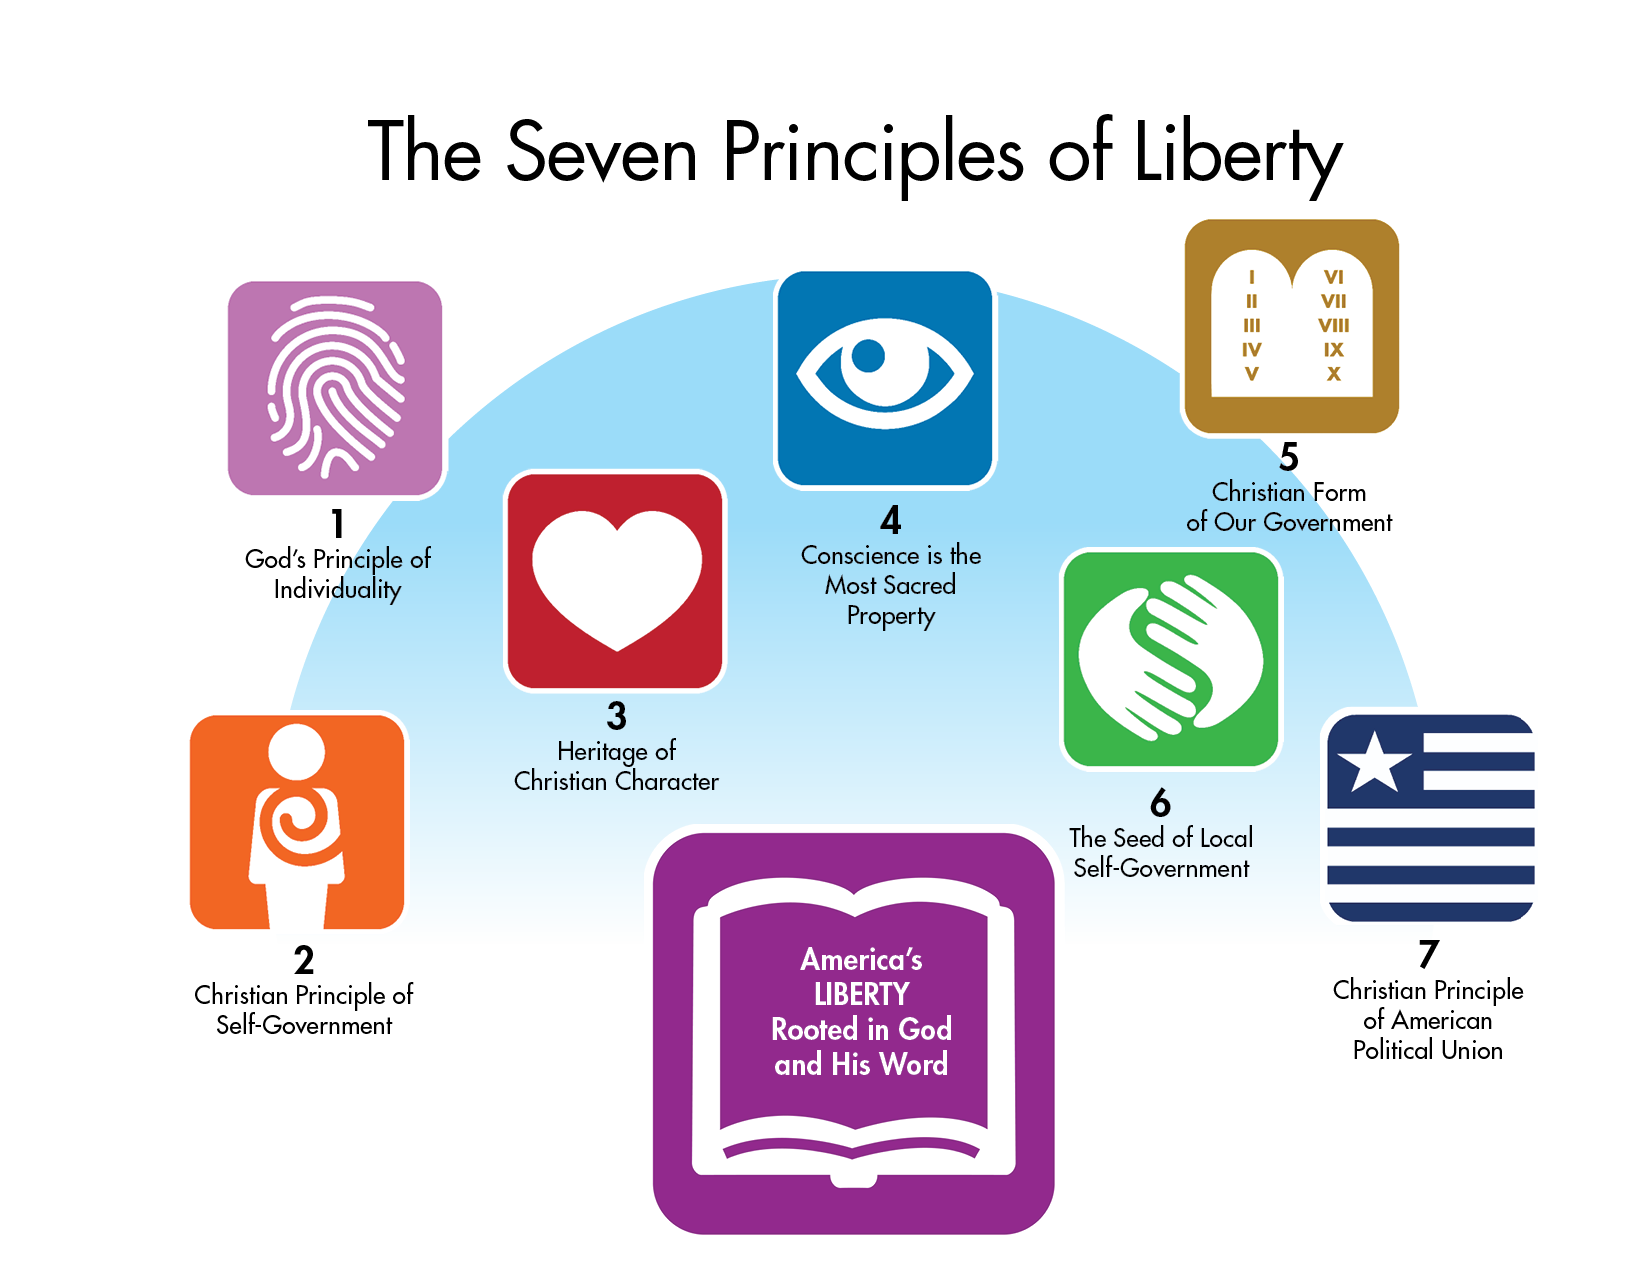 The Seven Principles of Liberty